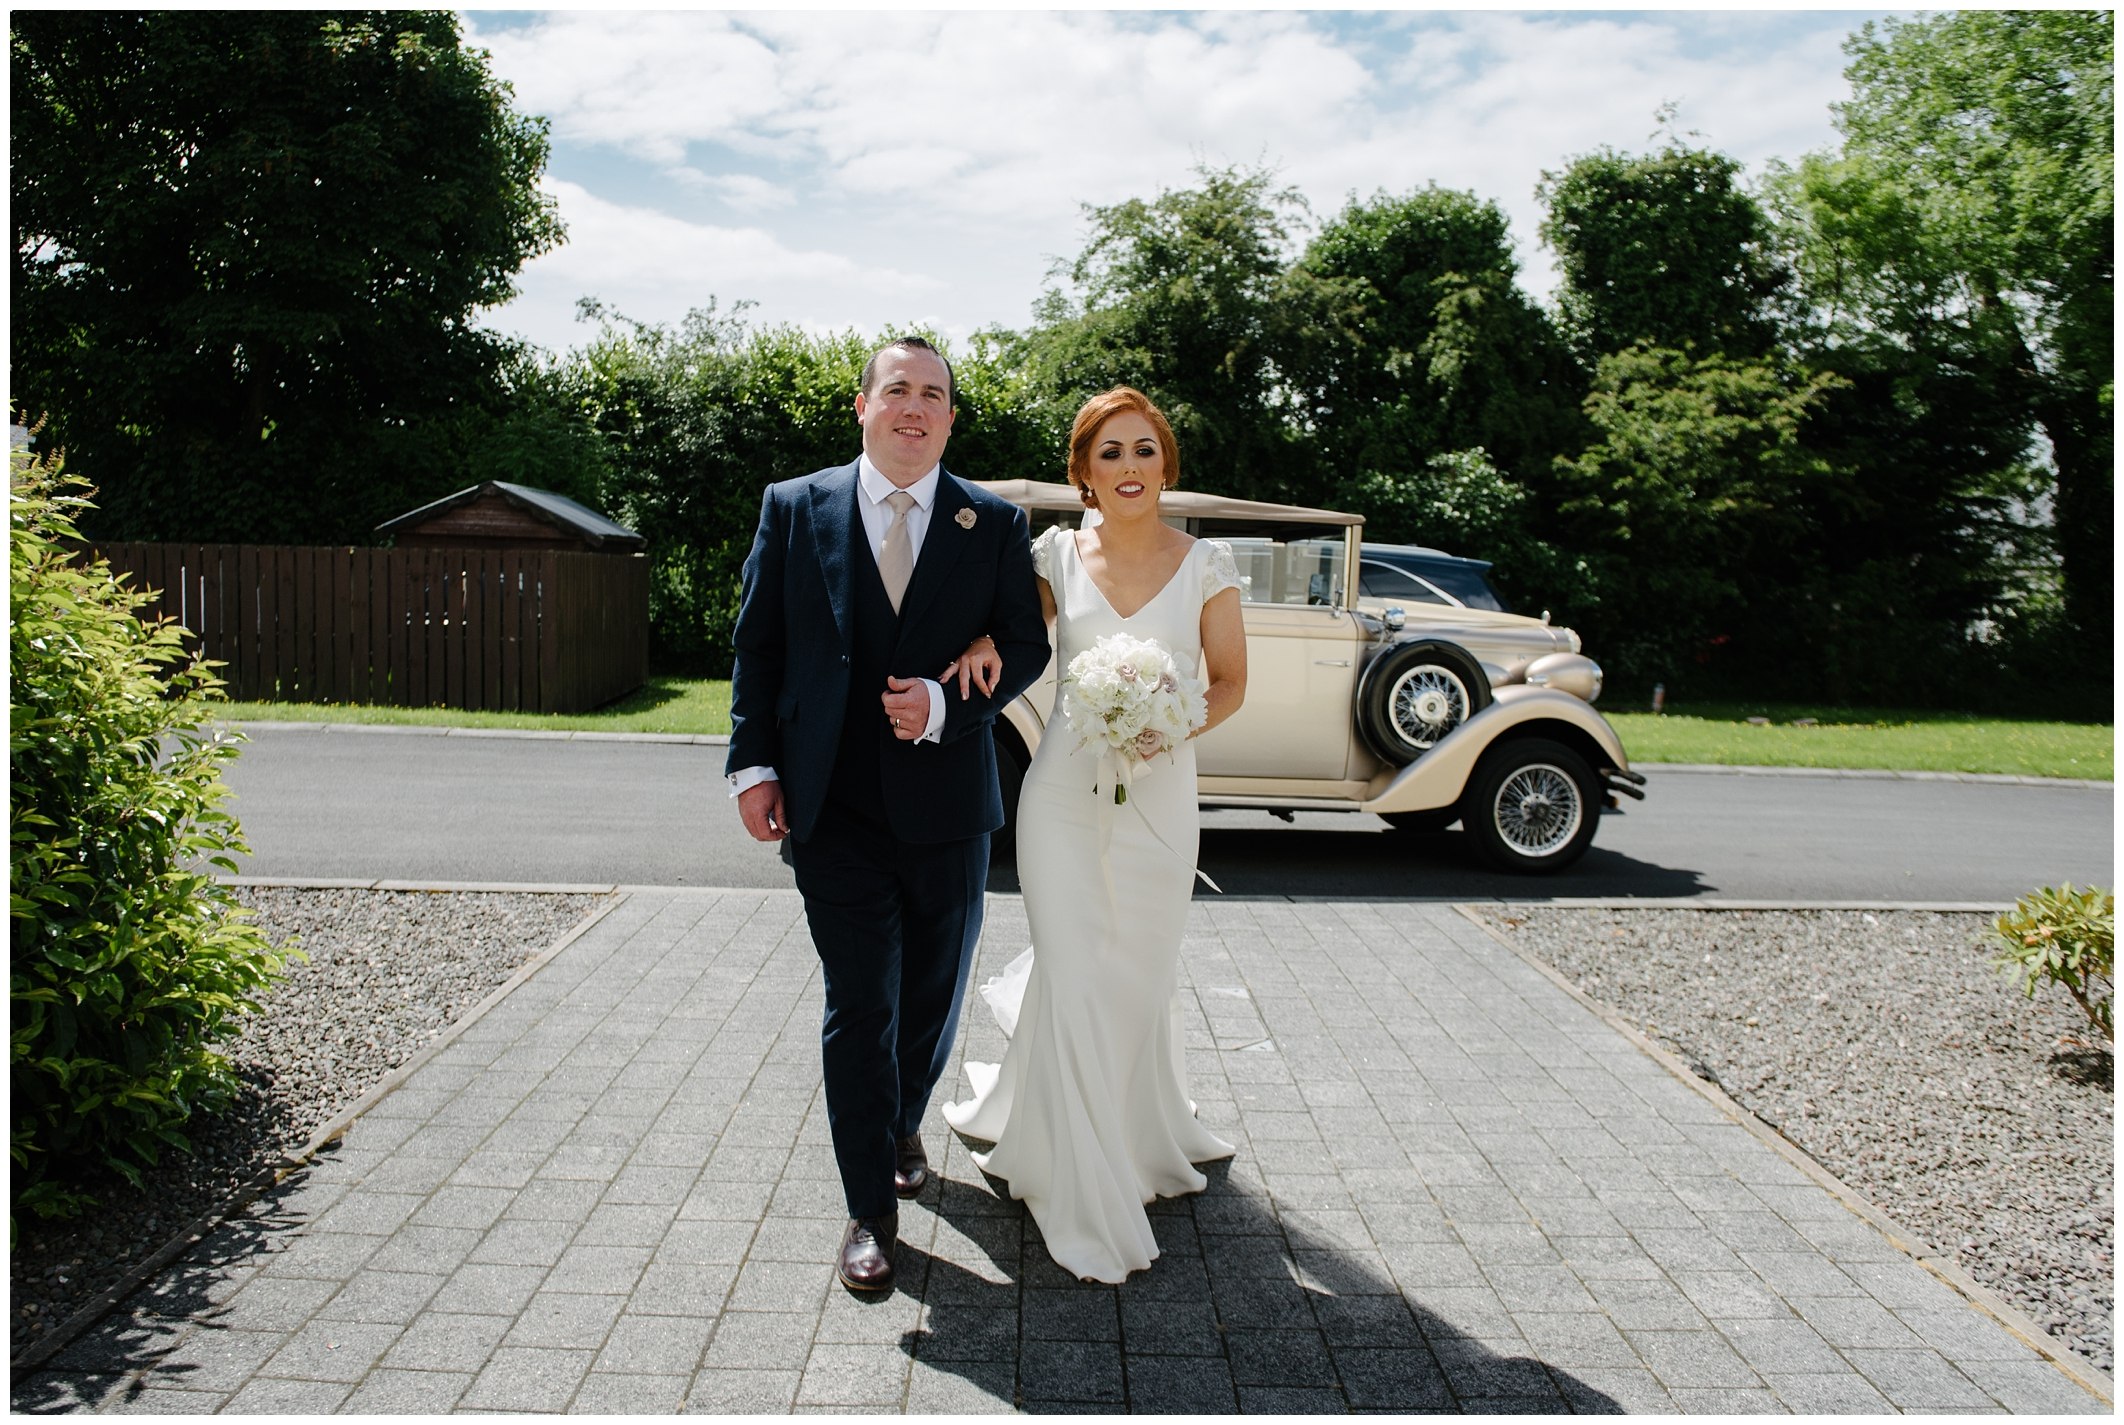 sinead_emmet_farnham_estate_wedding_jude_browne_photography_0068.jpg